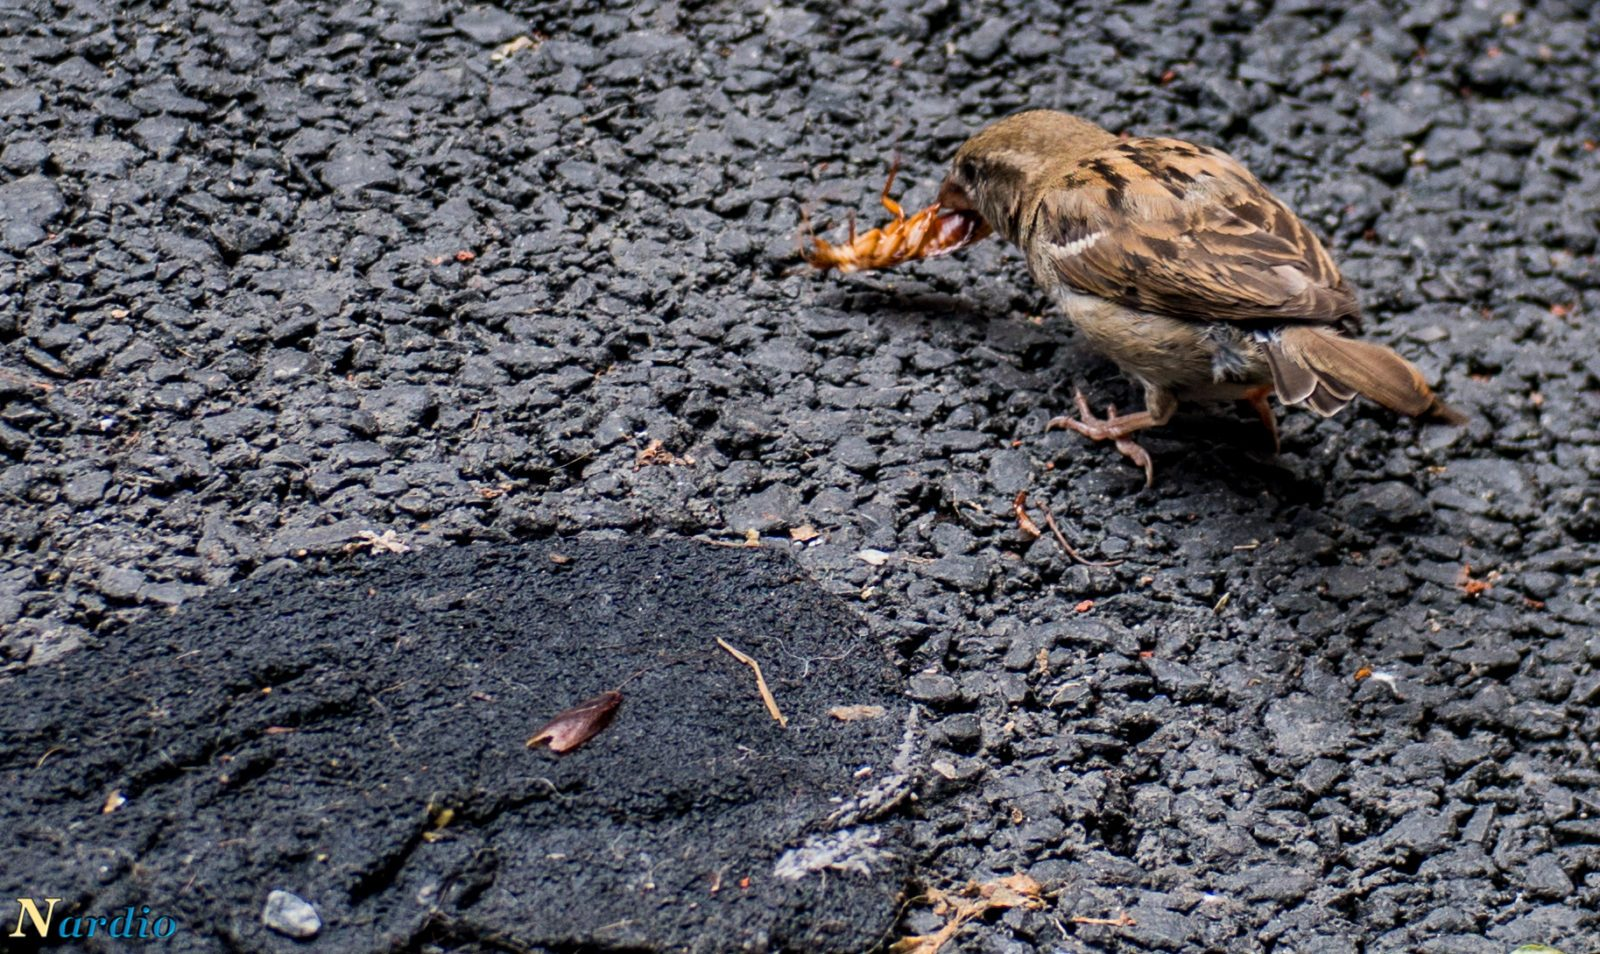 Nardio Picture of the day Nature In NYC- The Sparrow and the Roach Main